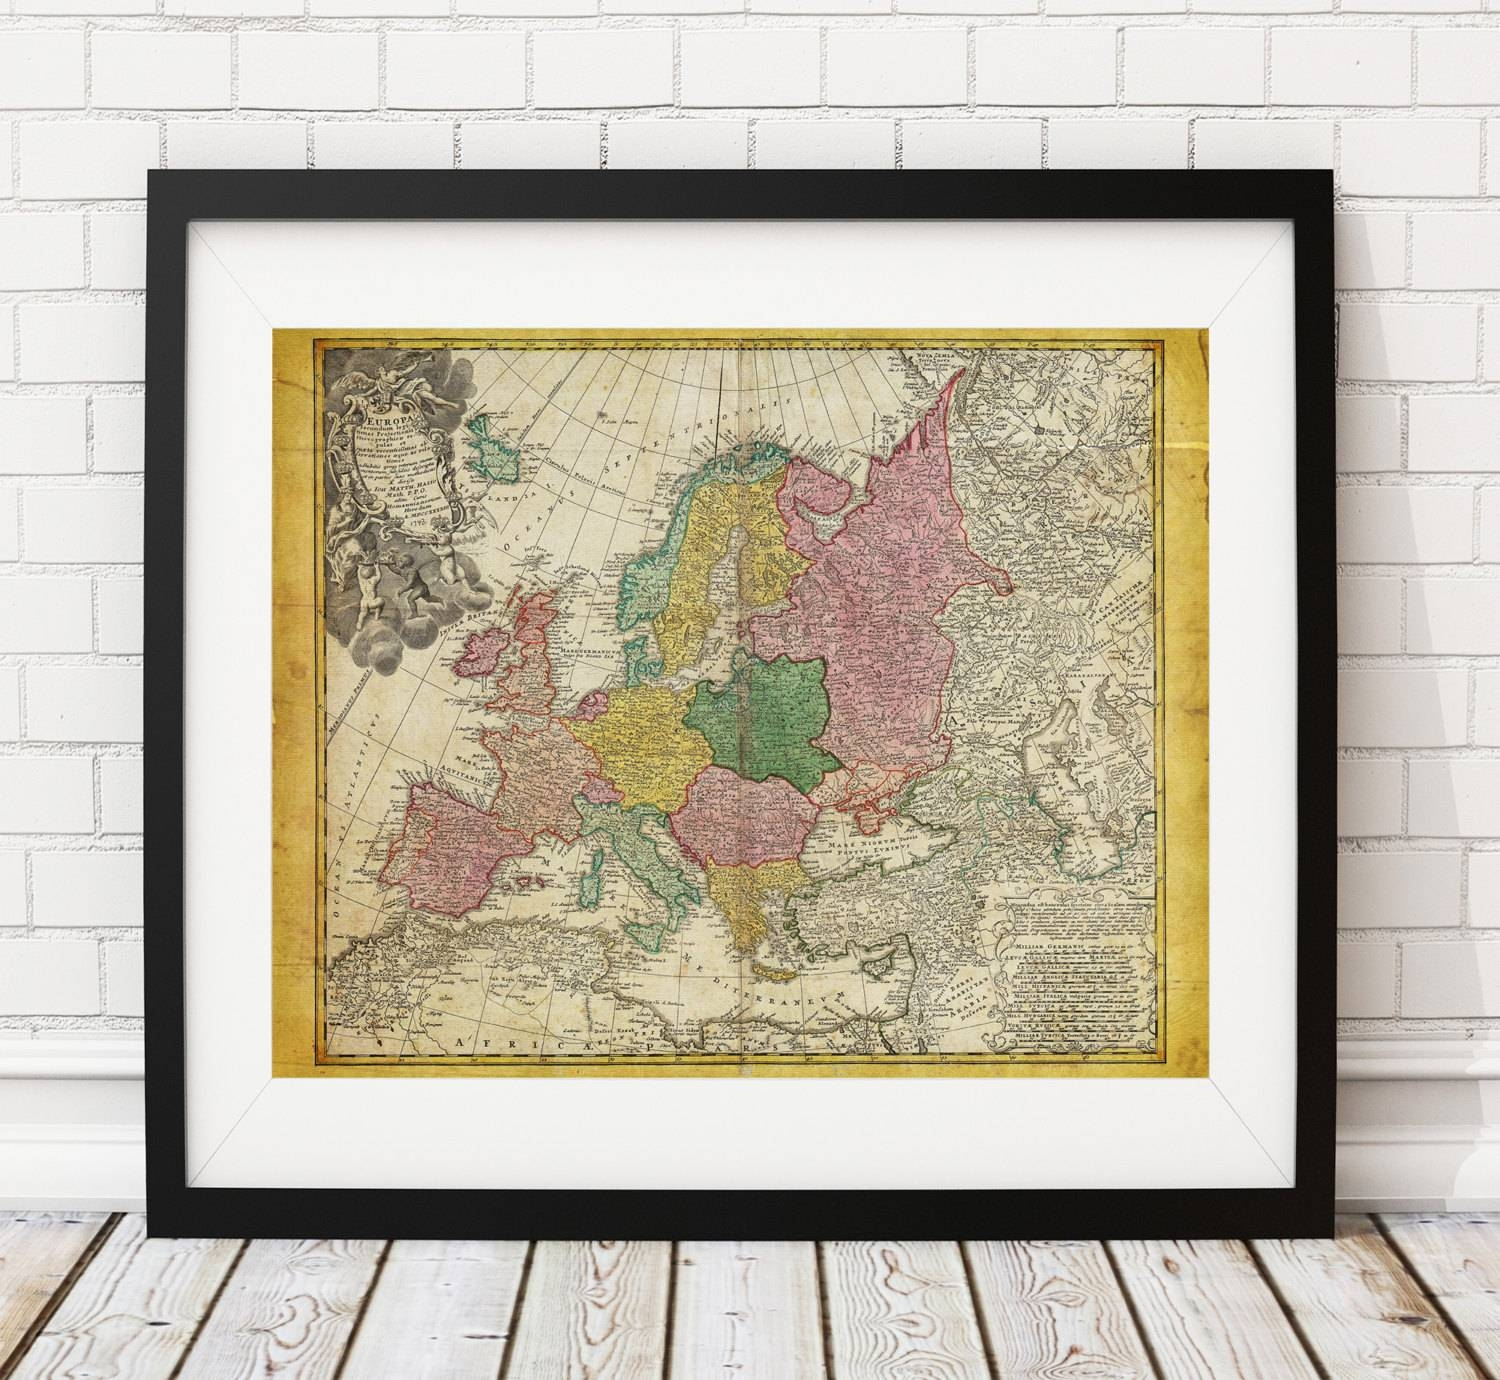 Europe Map Print, Vintage Map Art, Antique Map, Wall Art, History Intended For Recent Europe Map Wall Art (View 7 of 20)